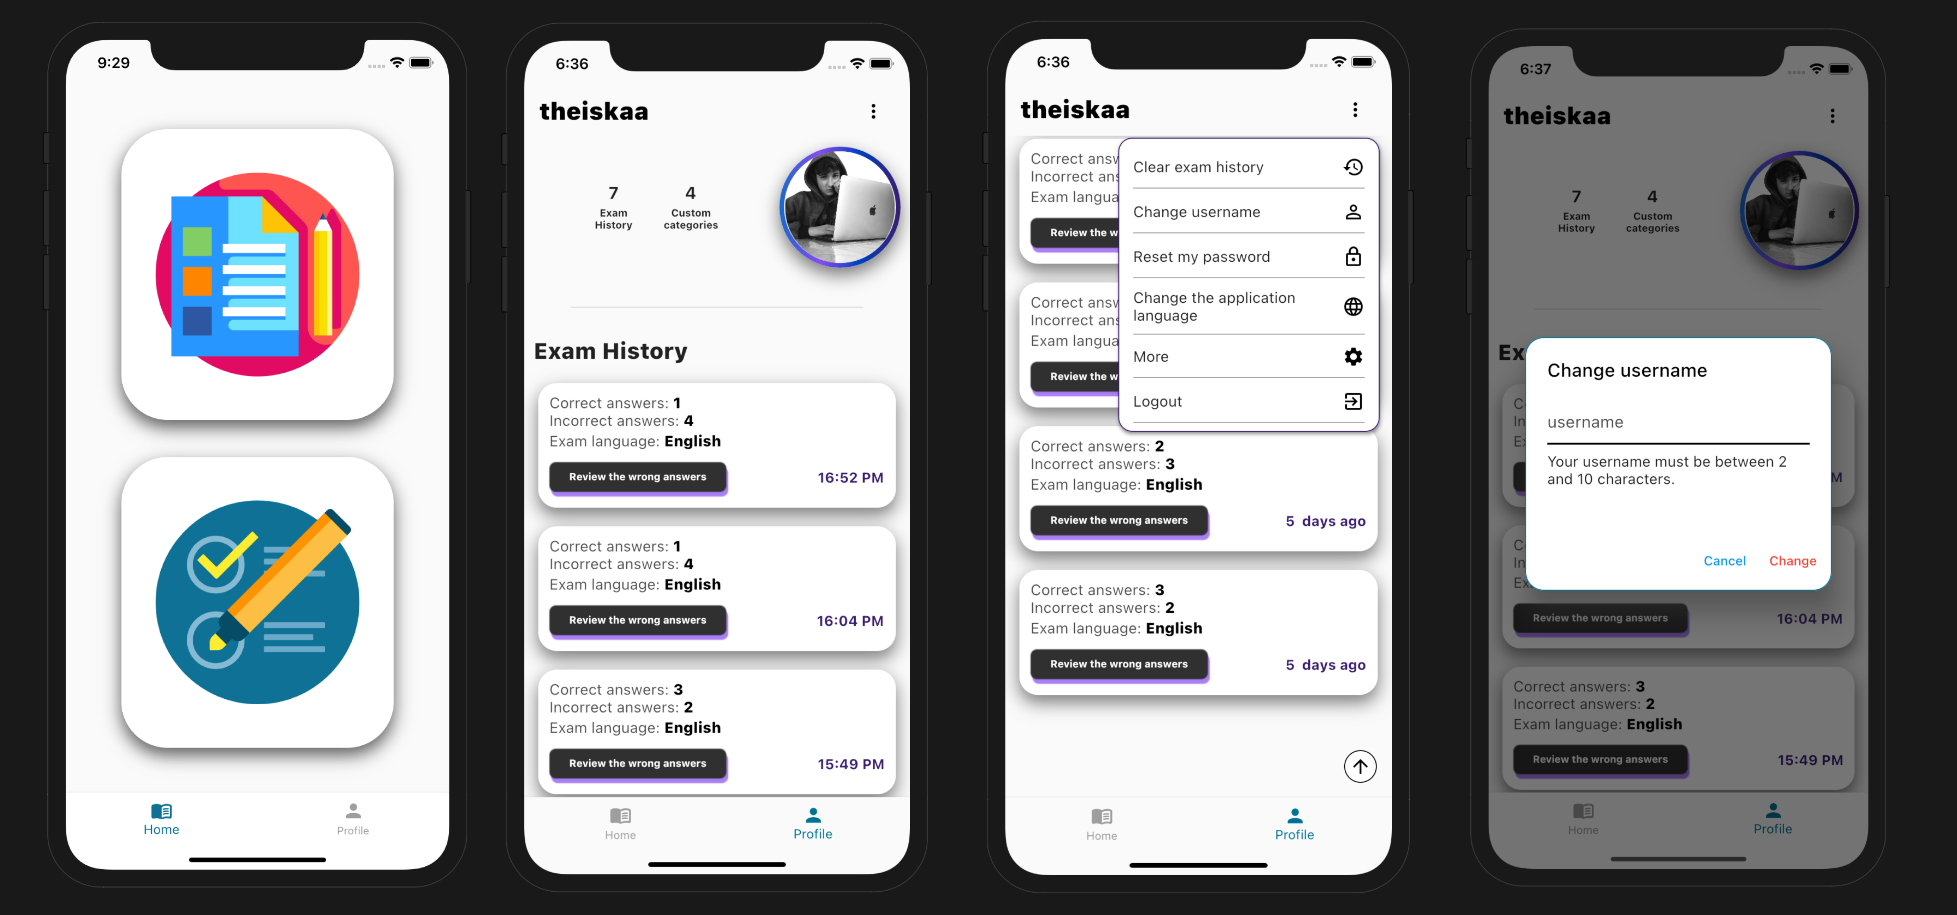 Exam and training app as social media developed with flutter